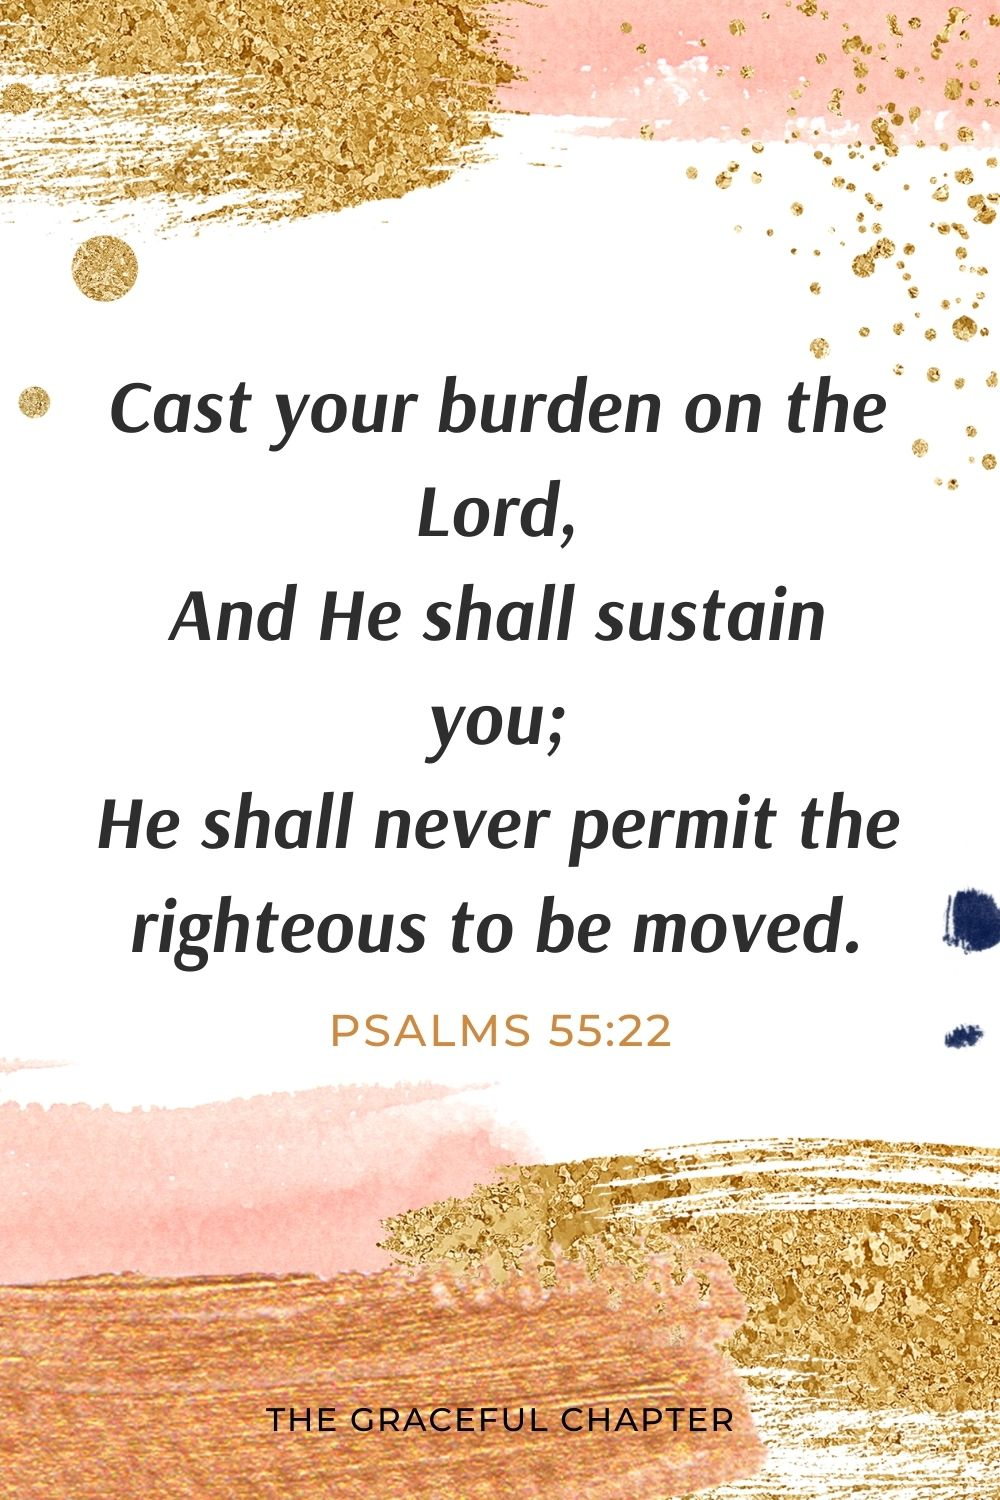 Cast your burden on the Lord, And He shall sustain you; He shall never permit the righteous to be moved. Psalms 55:22